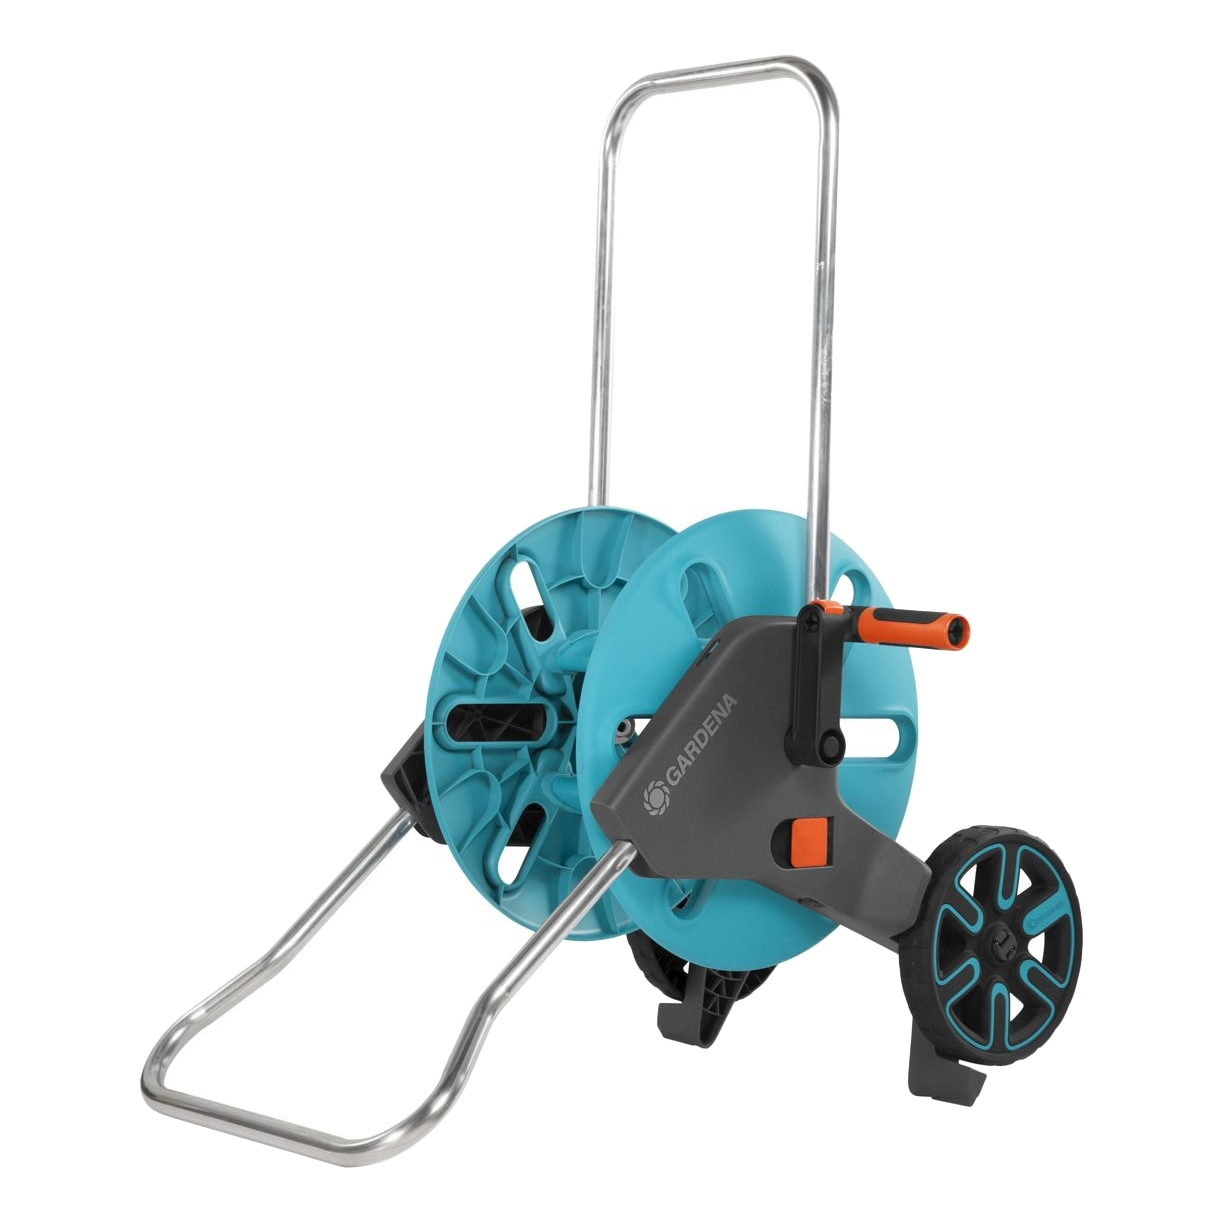 Hose Reel GARDENA 18510-20.000.00 (protection течи, Kick & Stand function, protection from Frost) стоимость